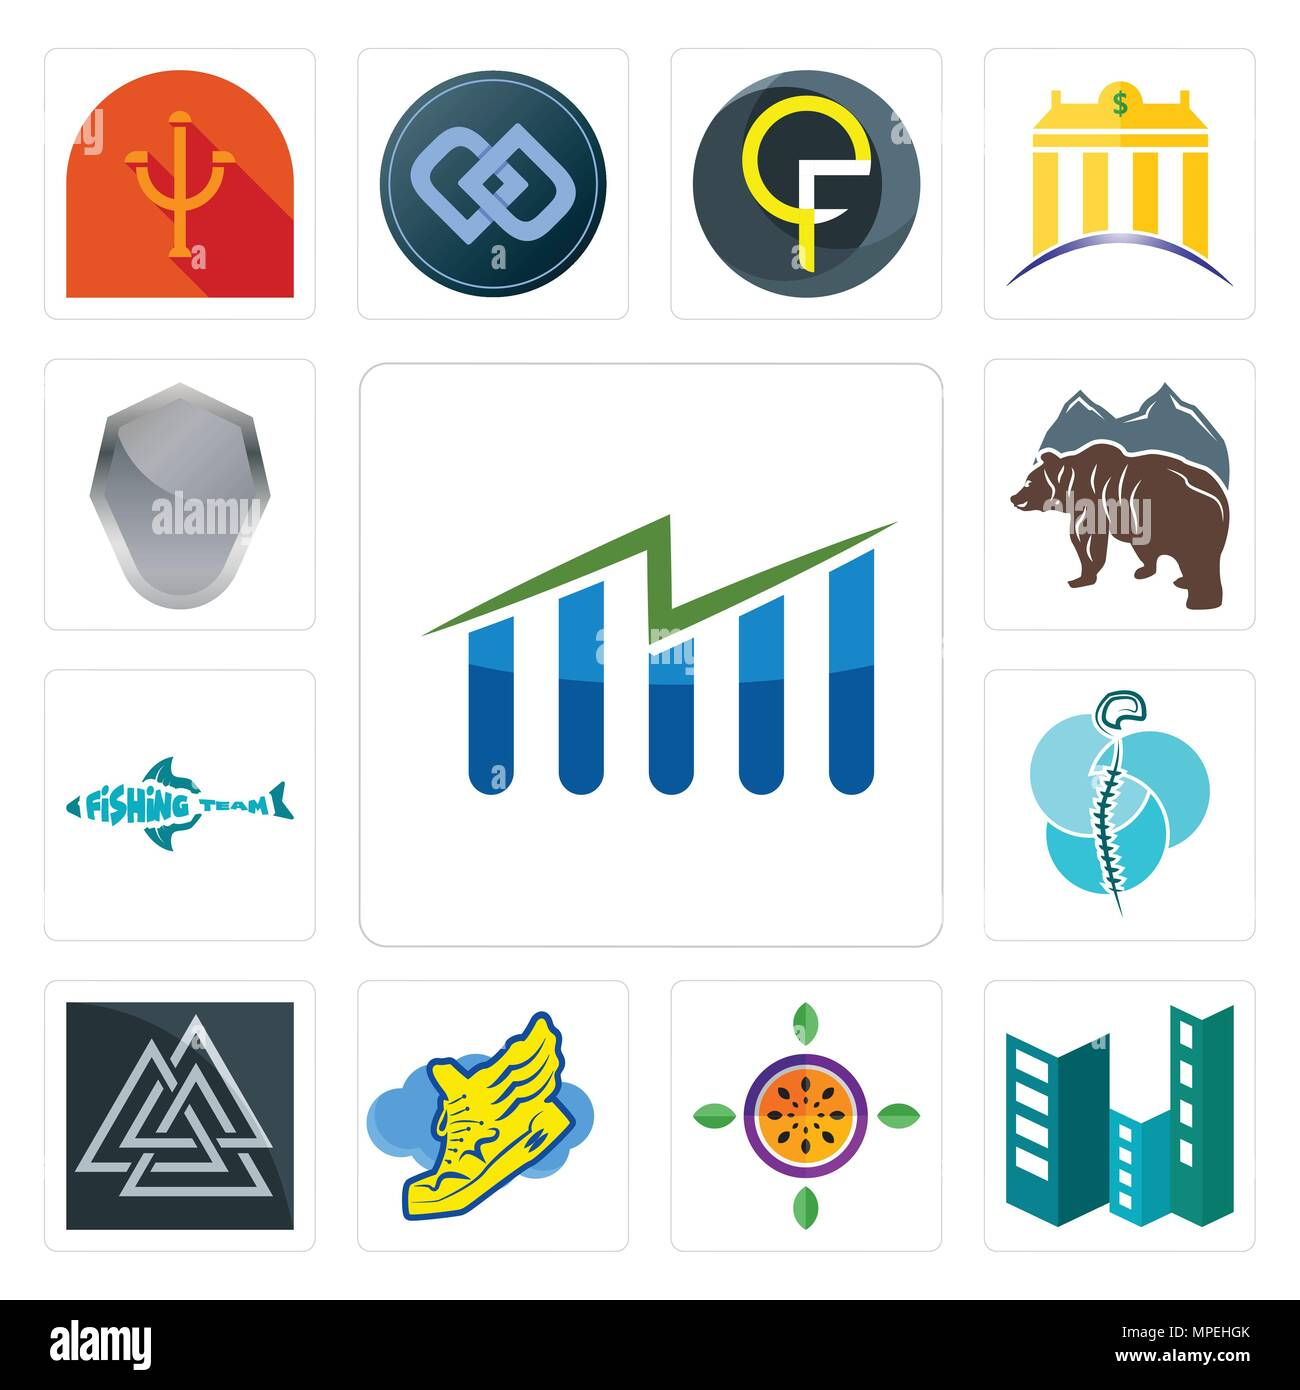 Set Of 13 simple editable icons such as free stock, construction, passion fruit, shoe with wings, valknut, neurosurgery, fishing team, bear, shield ca - Stock Vector